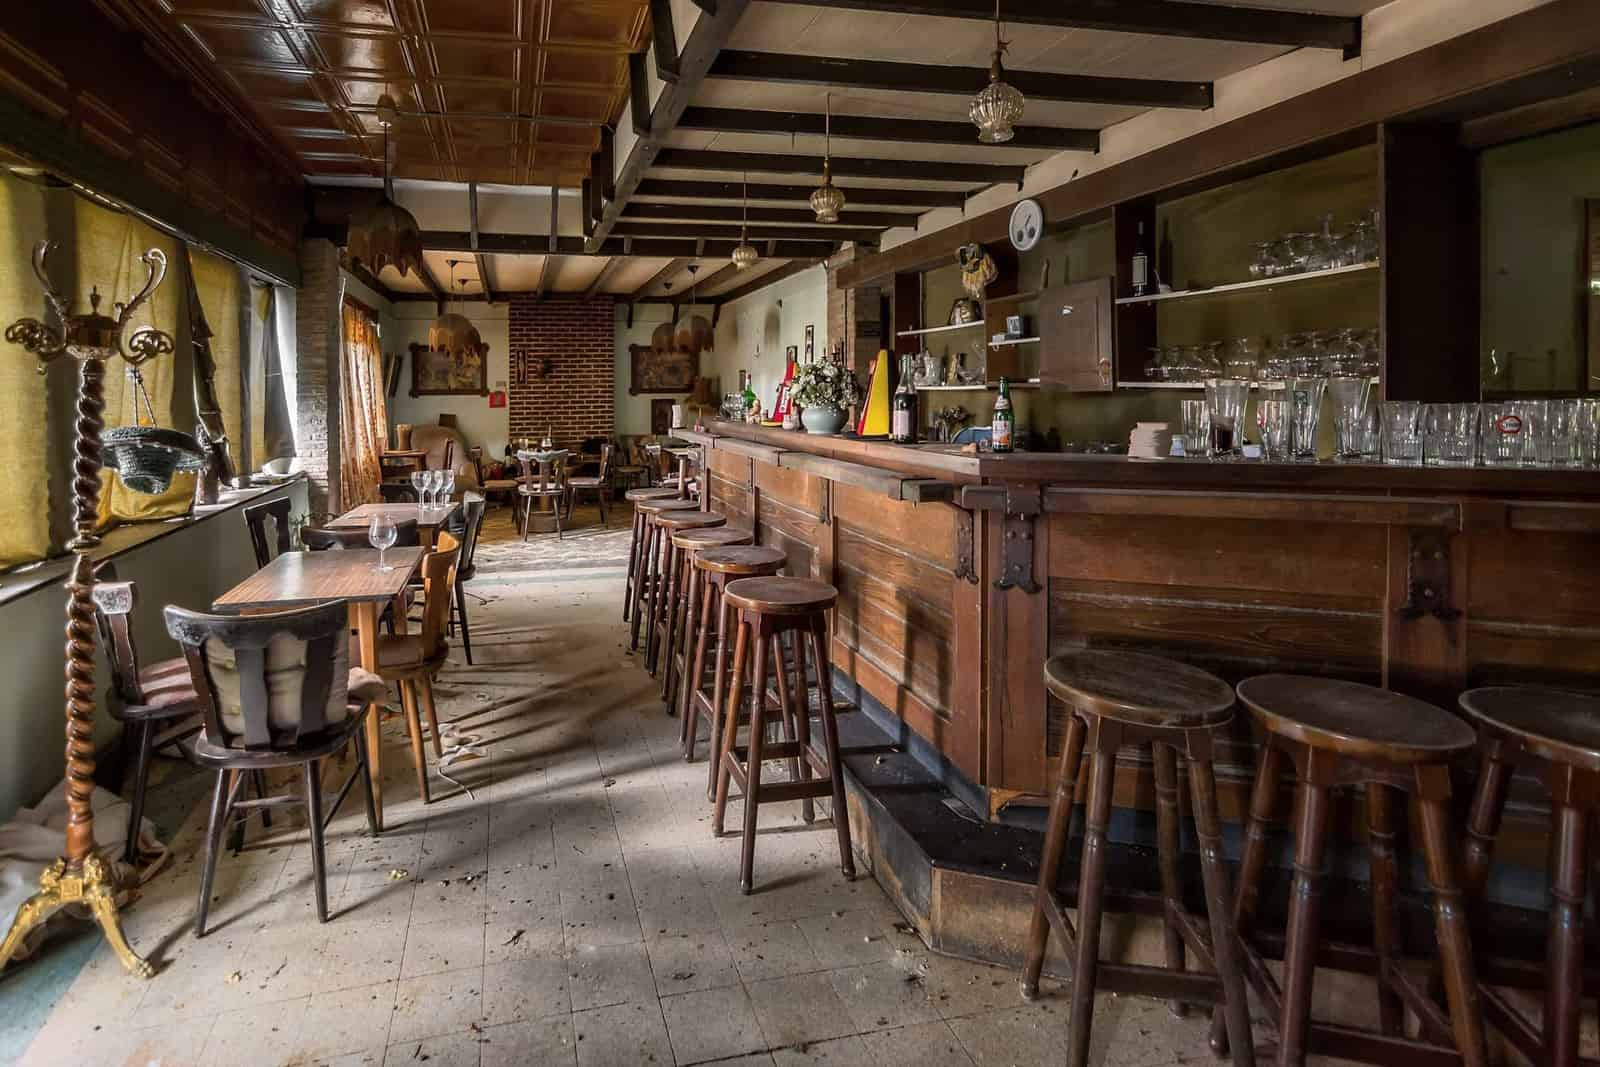 Cafe ons Moe Belgium Abandoned Pub Bar Room Featured Image